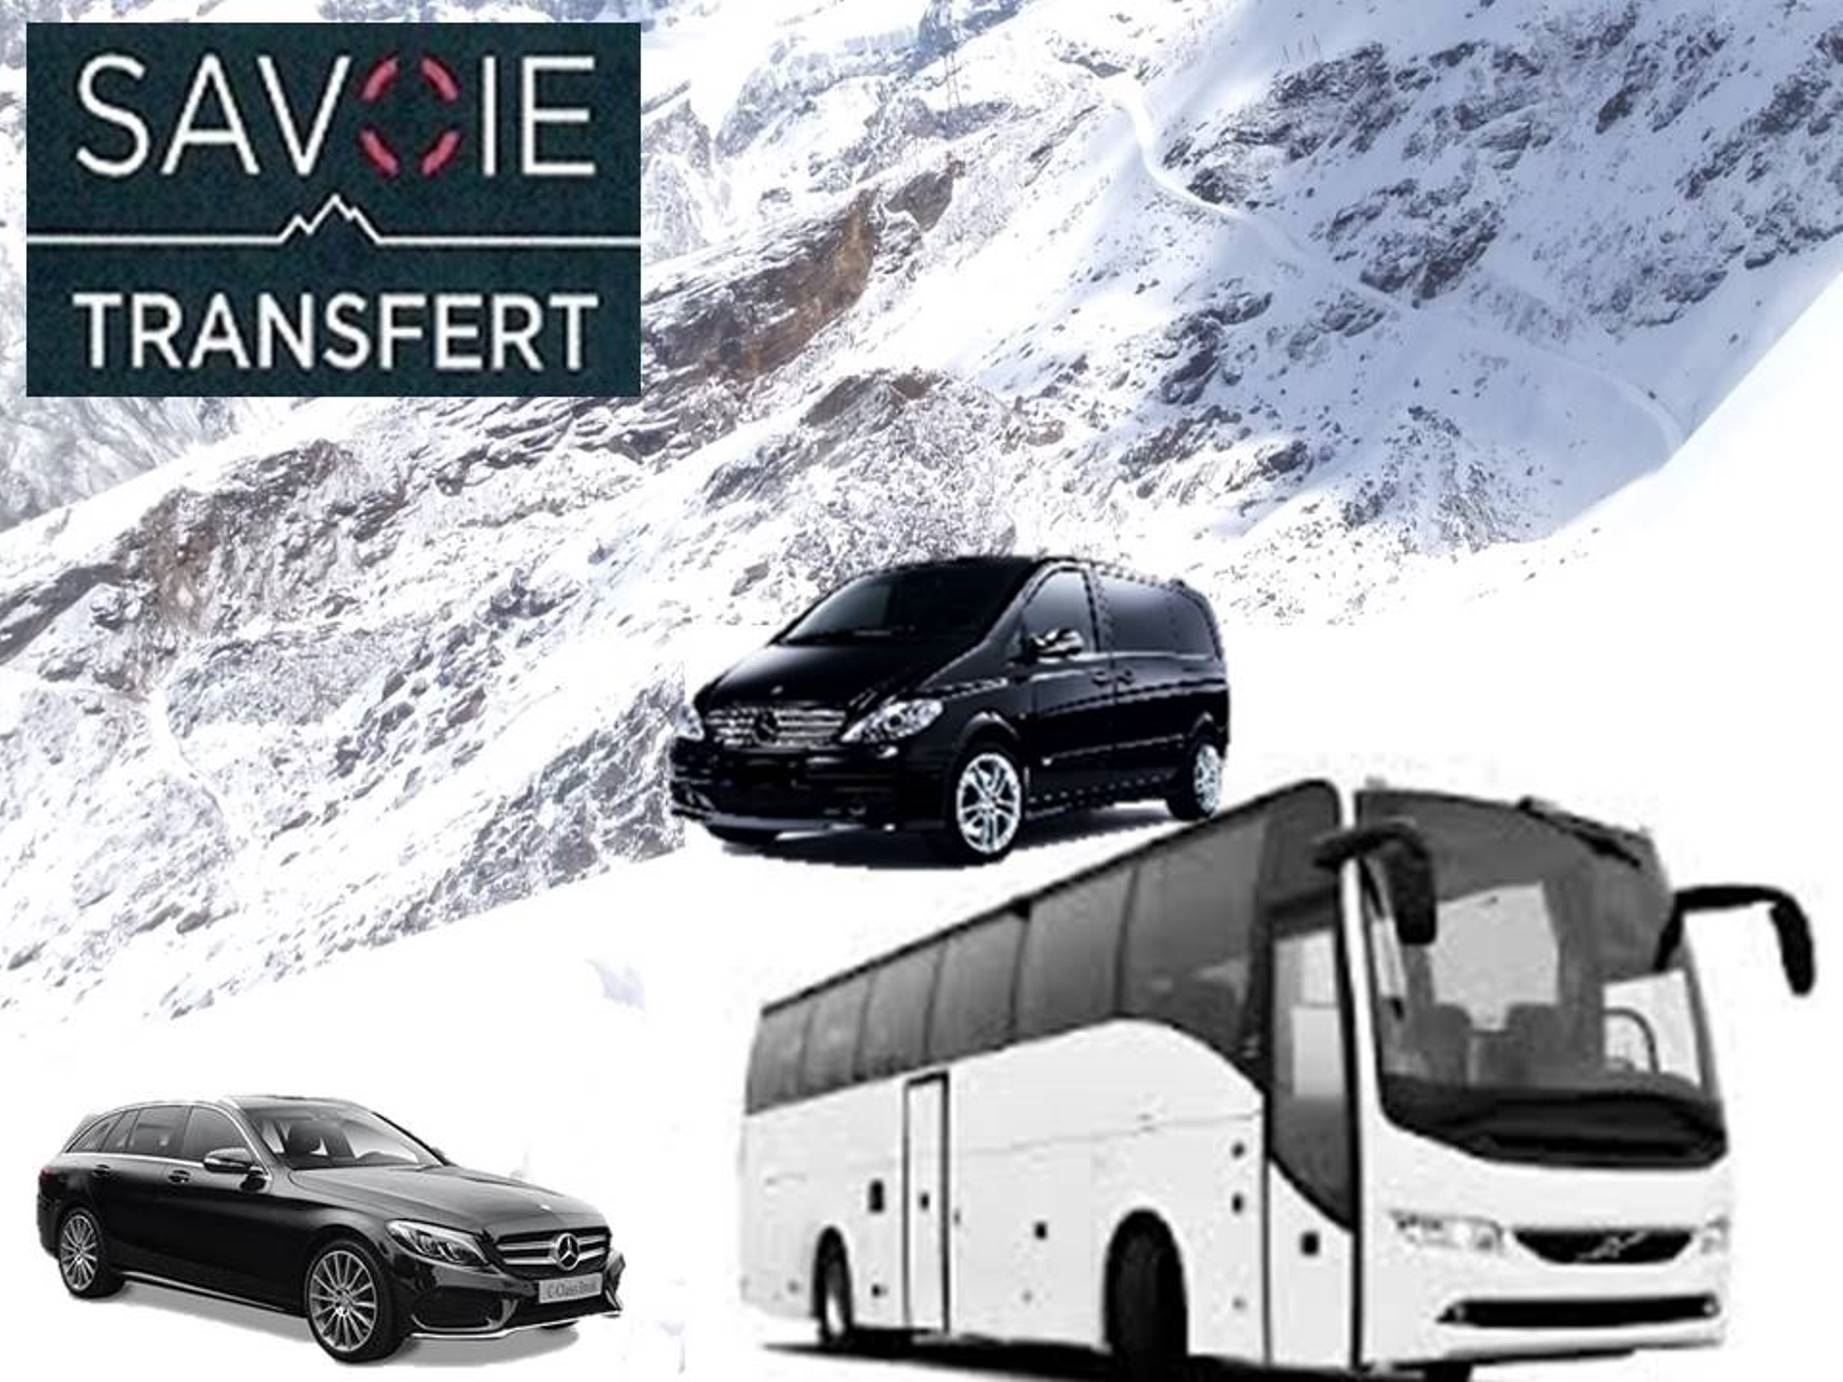 PRIVATE TRANSFER from GENEVA AIRPORT with VAL THORENS TRANSFERT